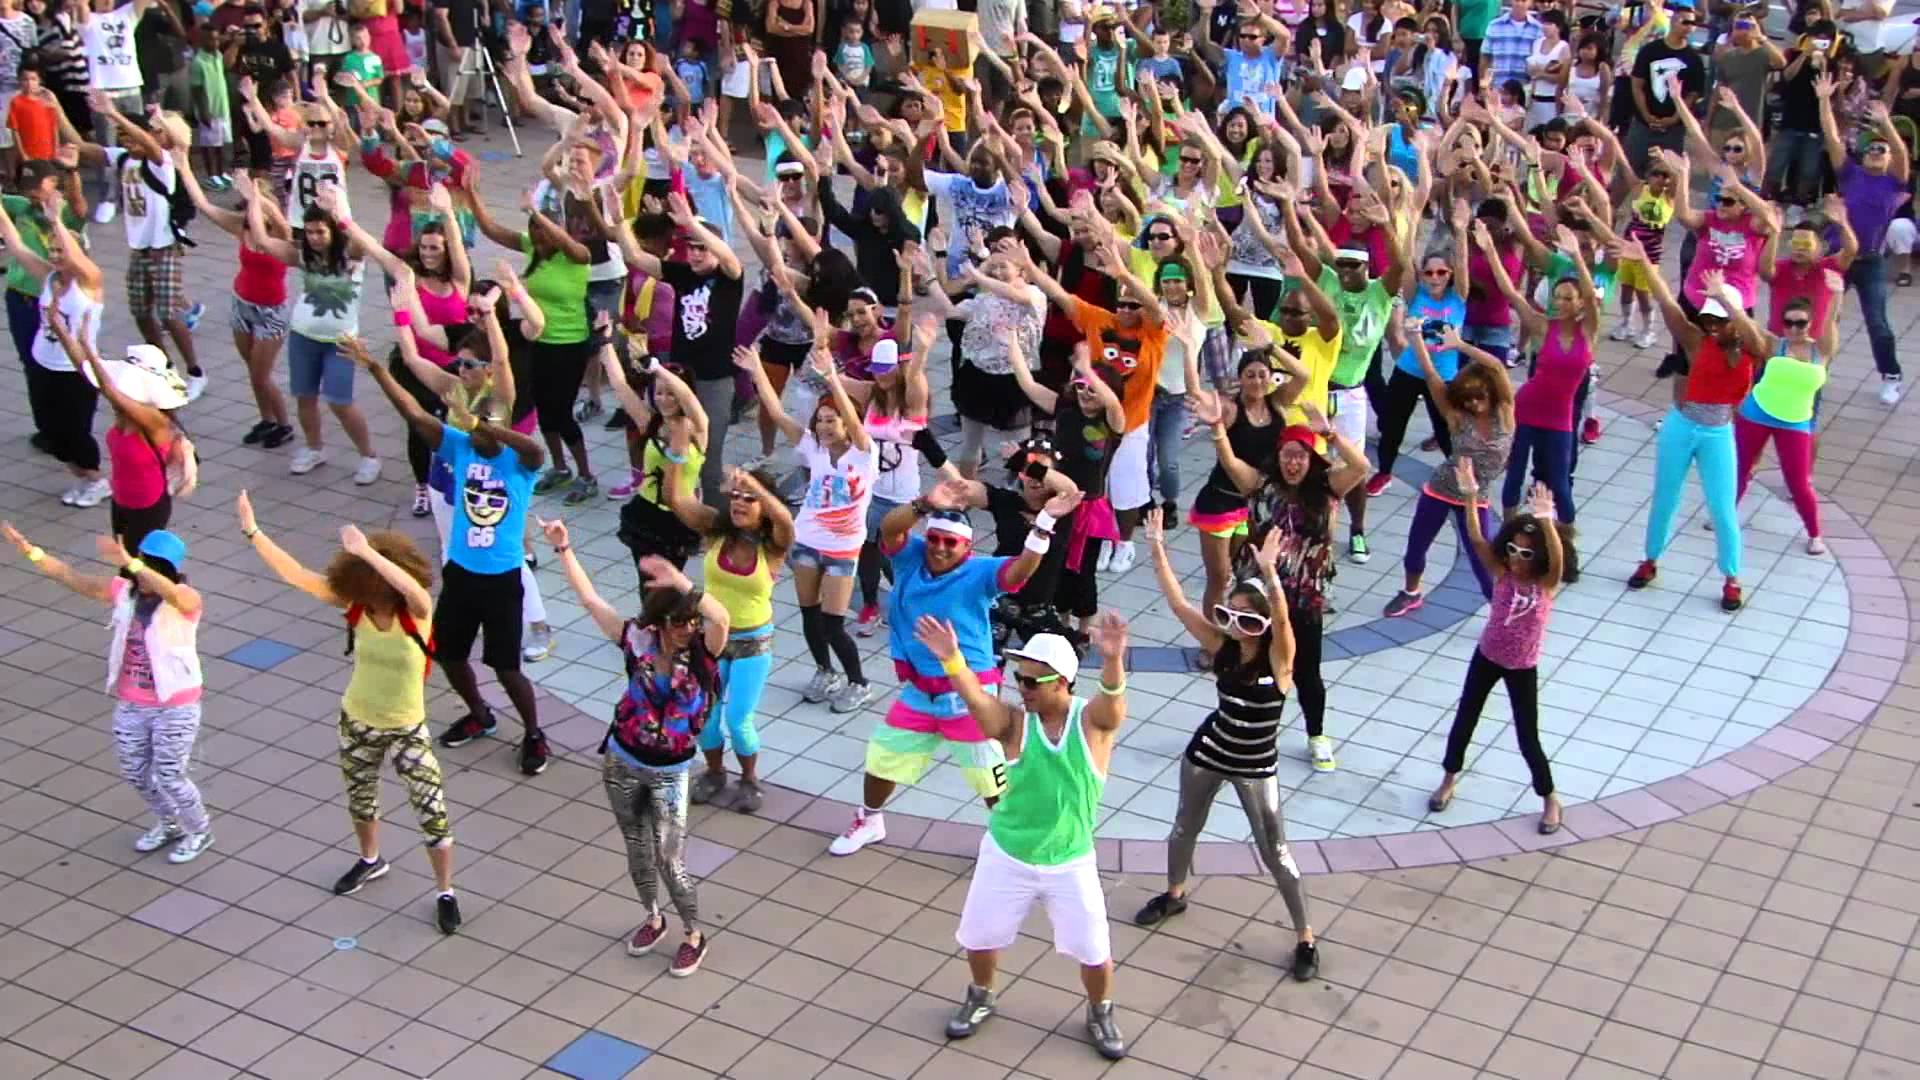 People dancing in a public scene as a flash mob or flashmob